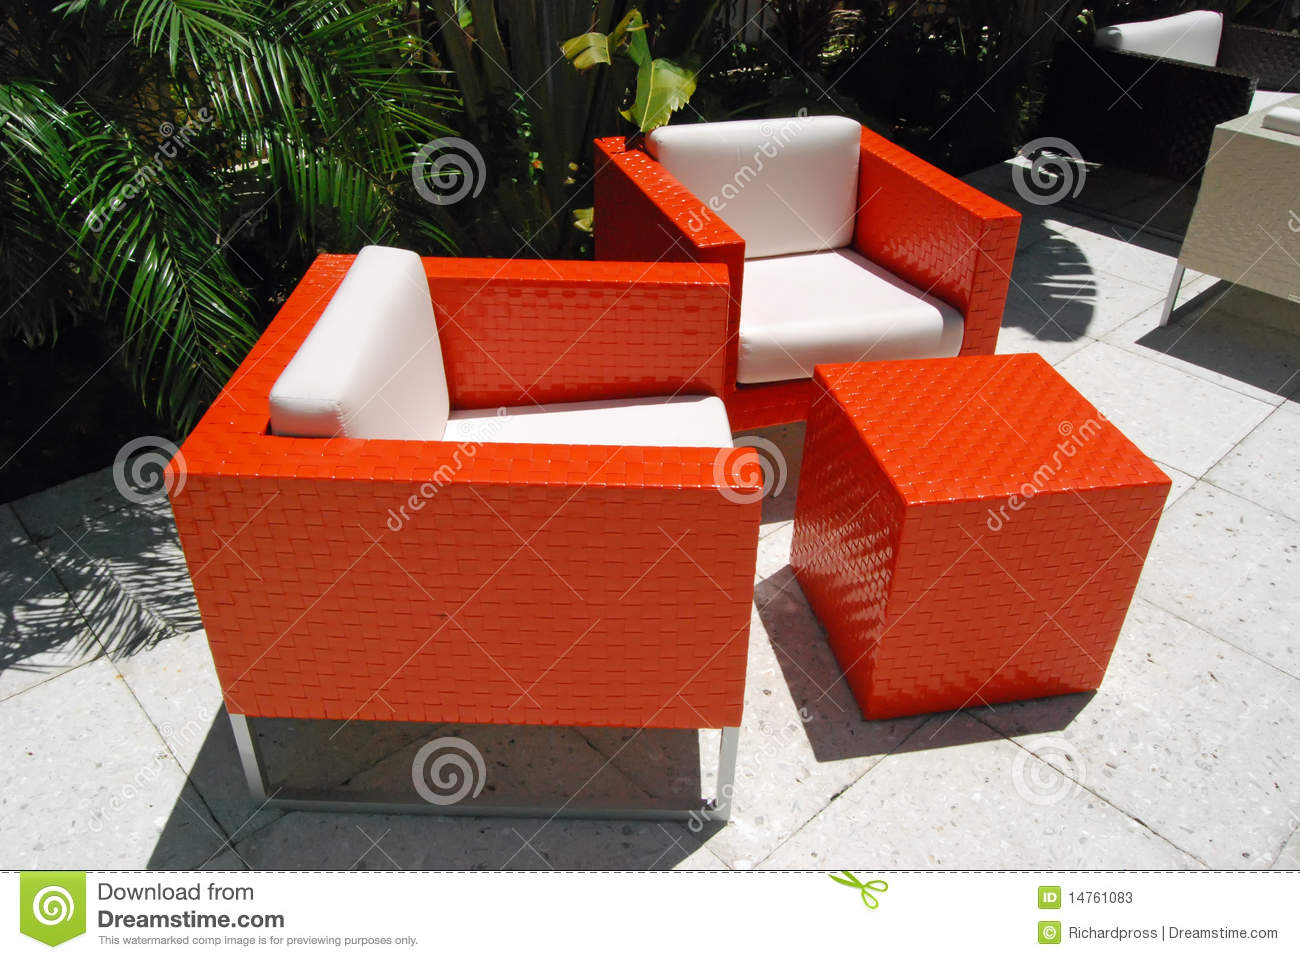 Bright Orange Patio Chairs & Bright Orange Patio Chairs stock image. Image of outdoors - 14761083